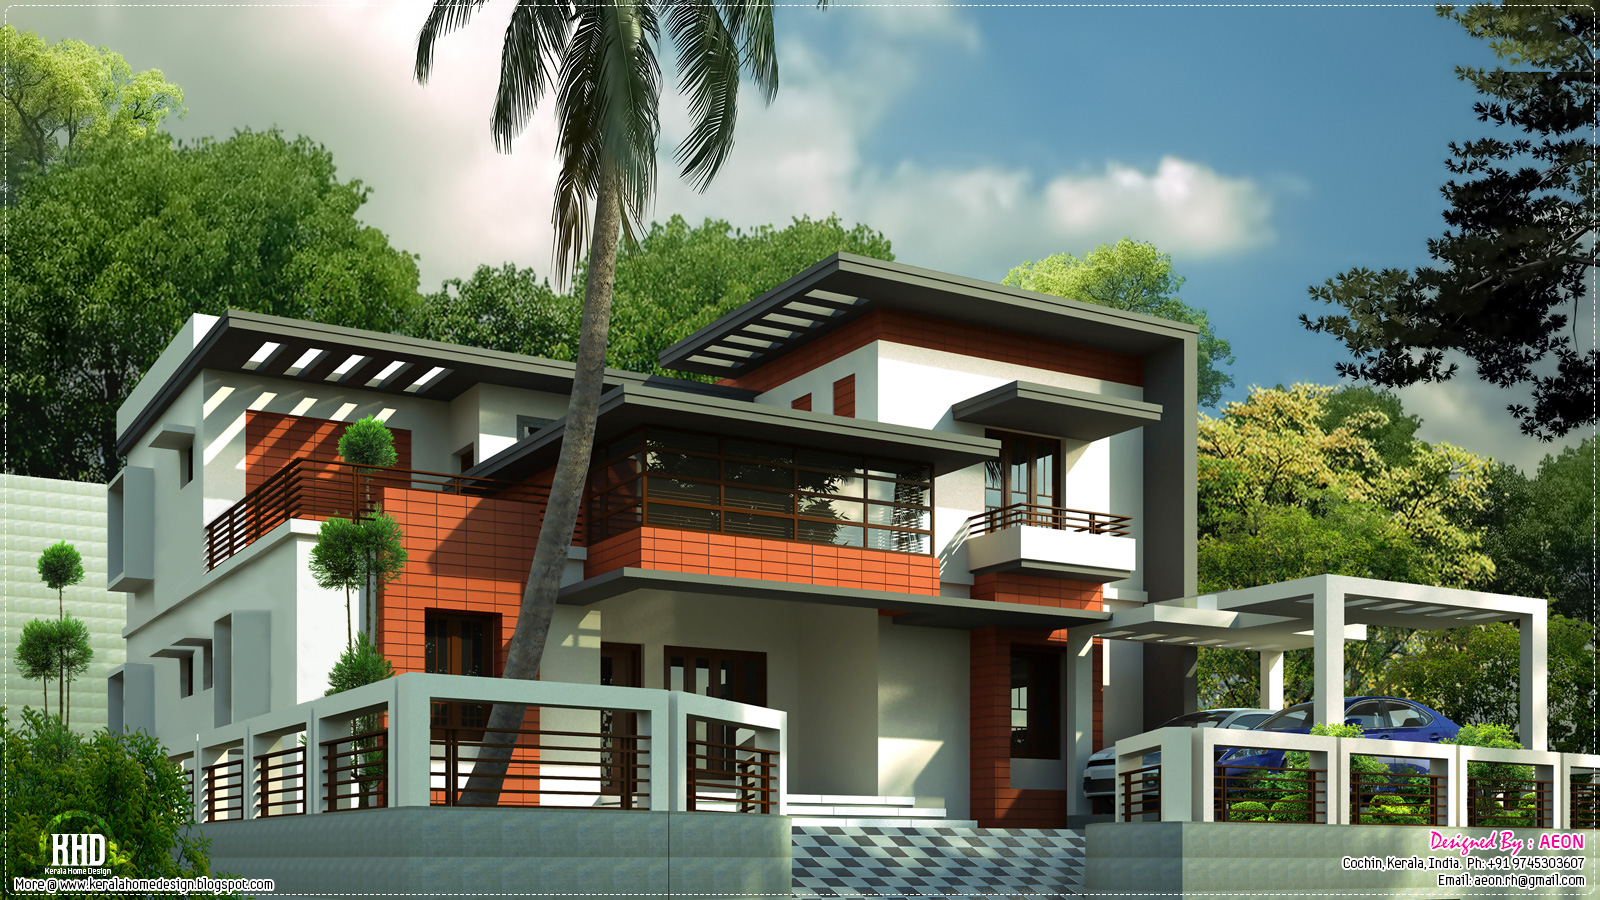 3400 Sq Feet Contemporary Home Design Kerala